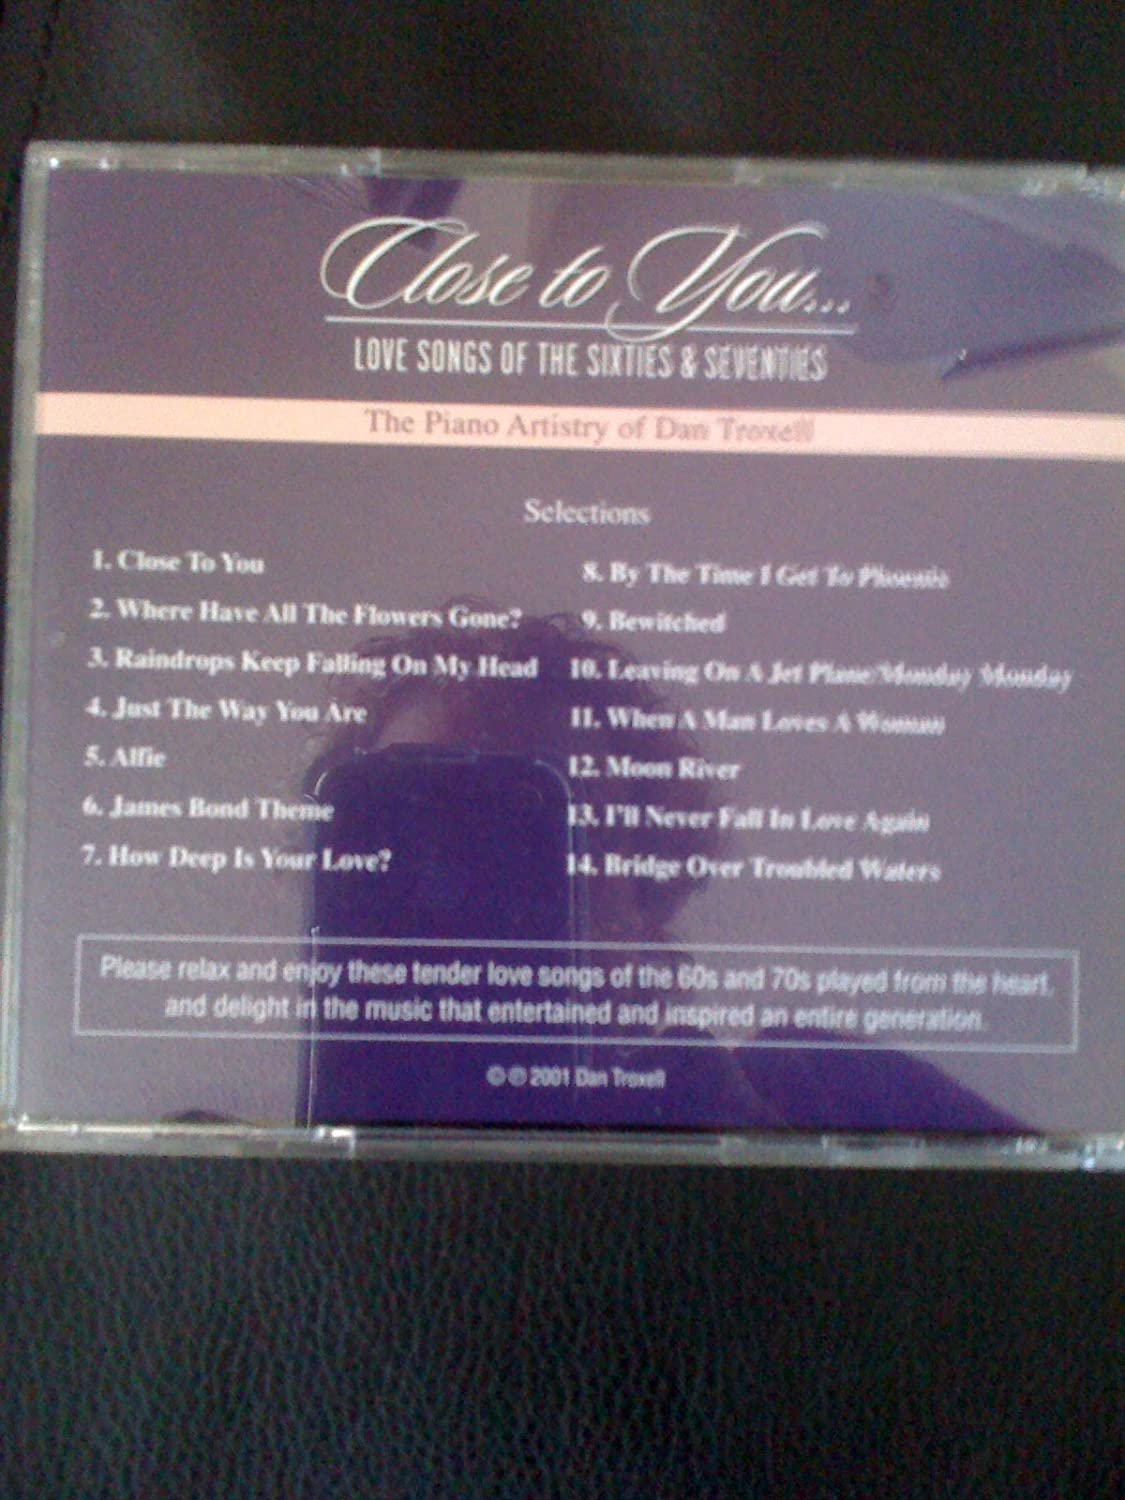 Dan Troxell - Close to You - Love Songs of the Sixties and